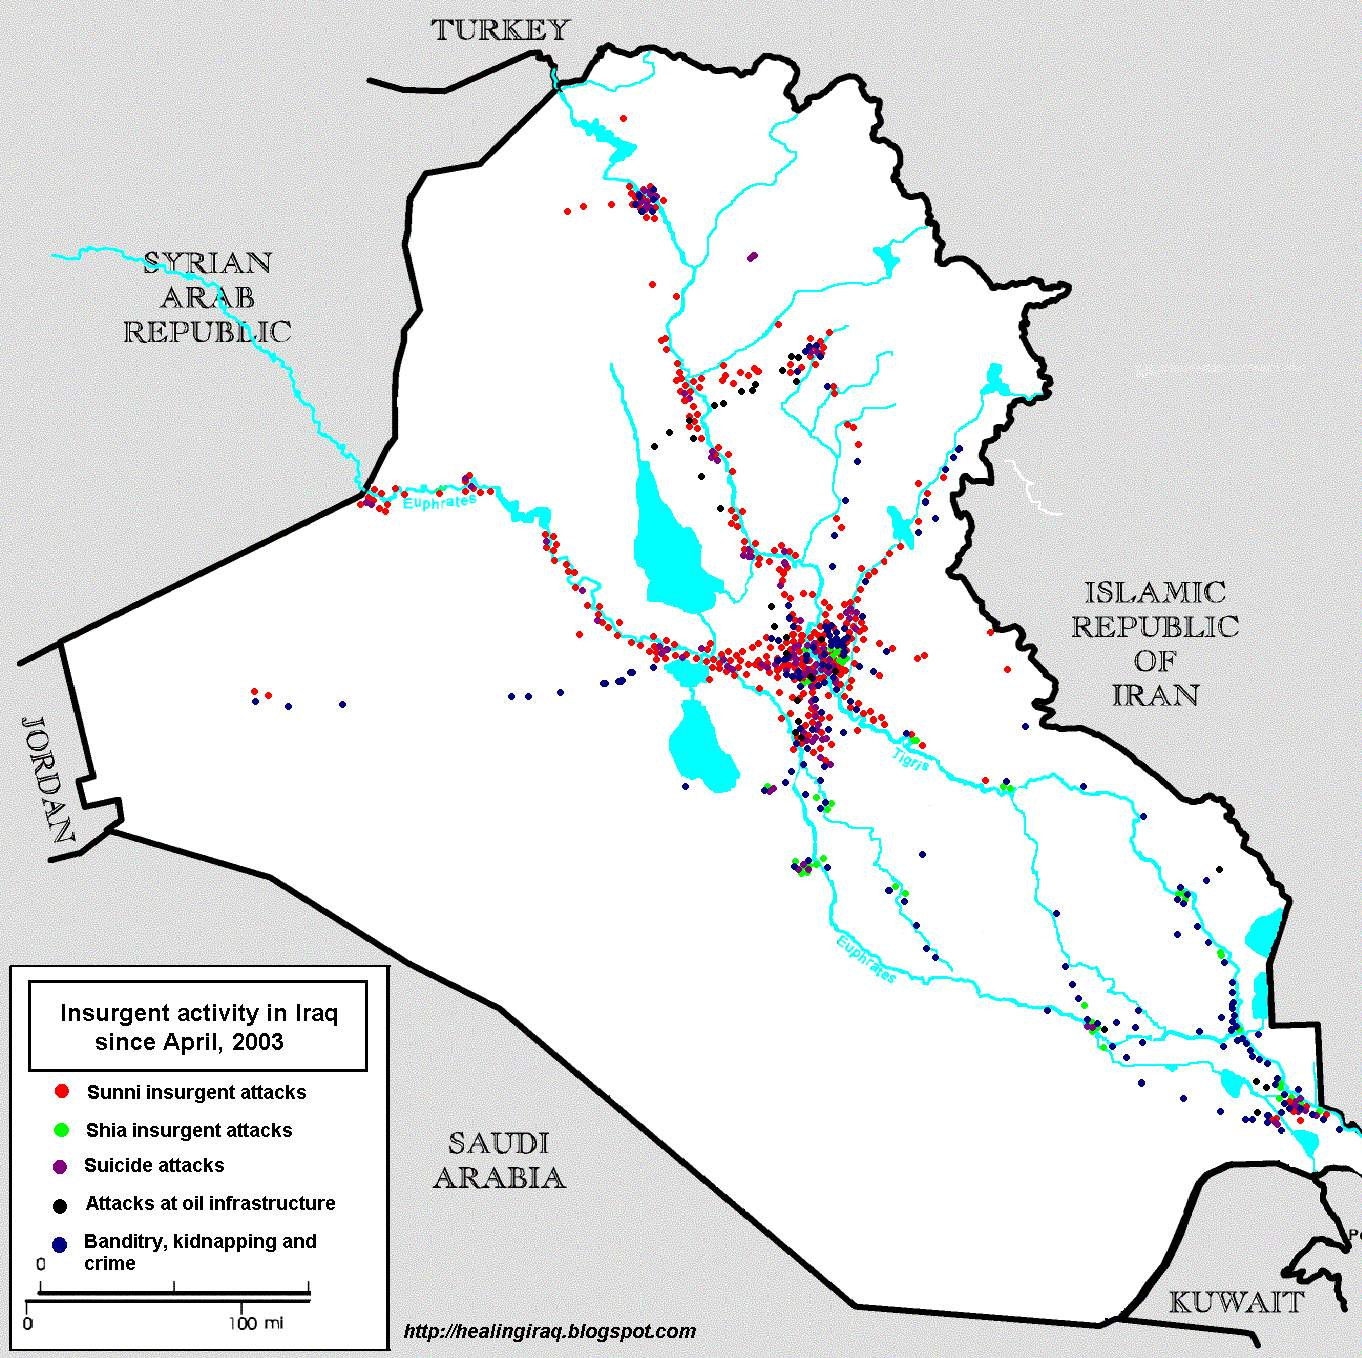 Violence in Iraq since April 9, 2003